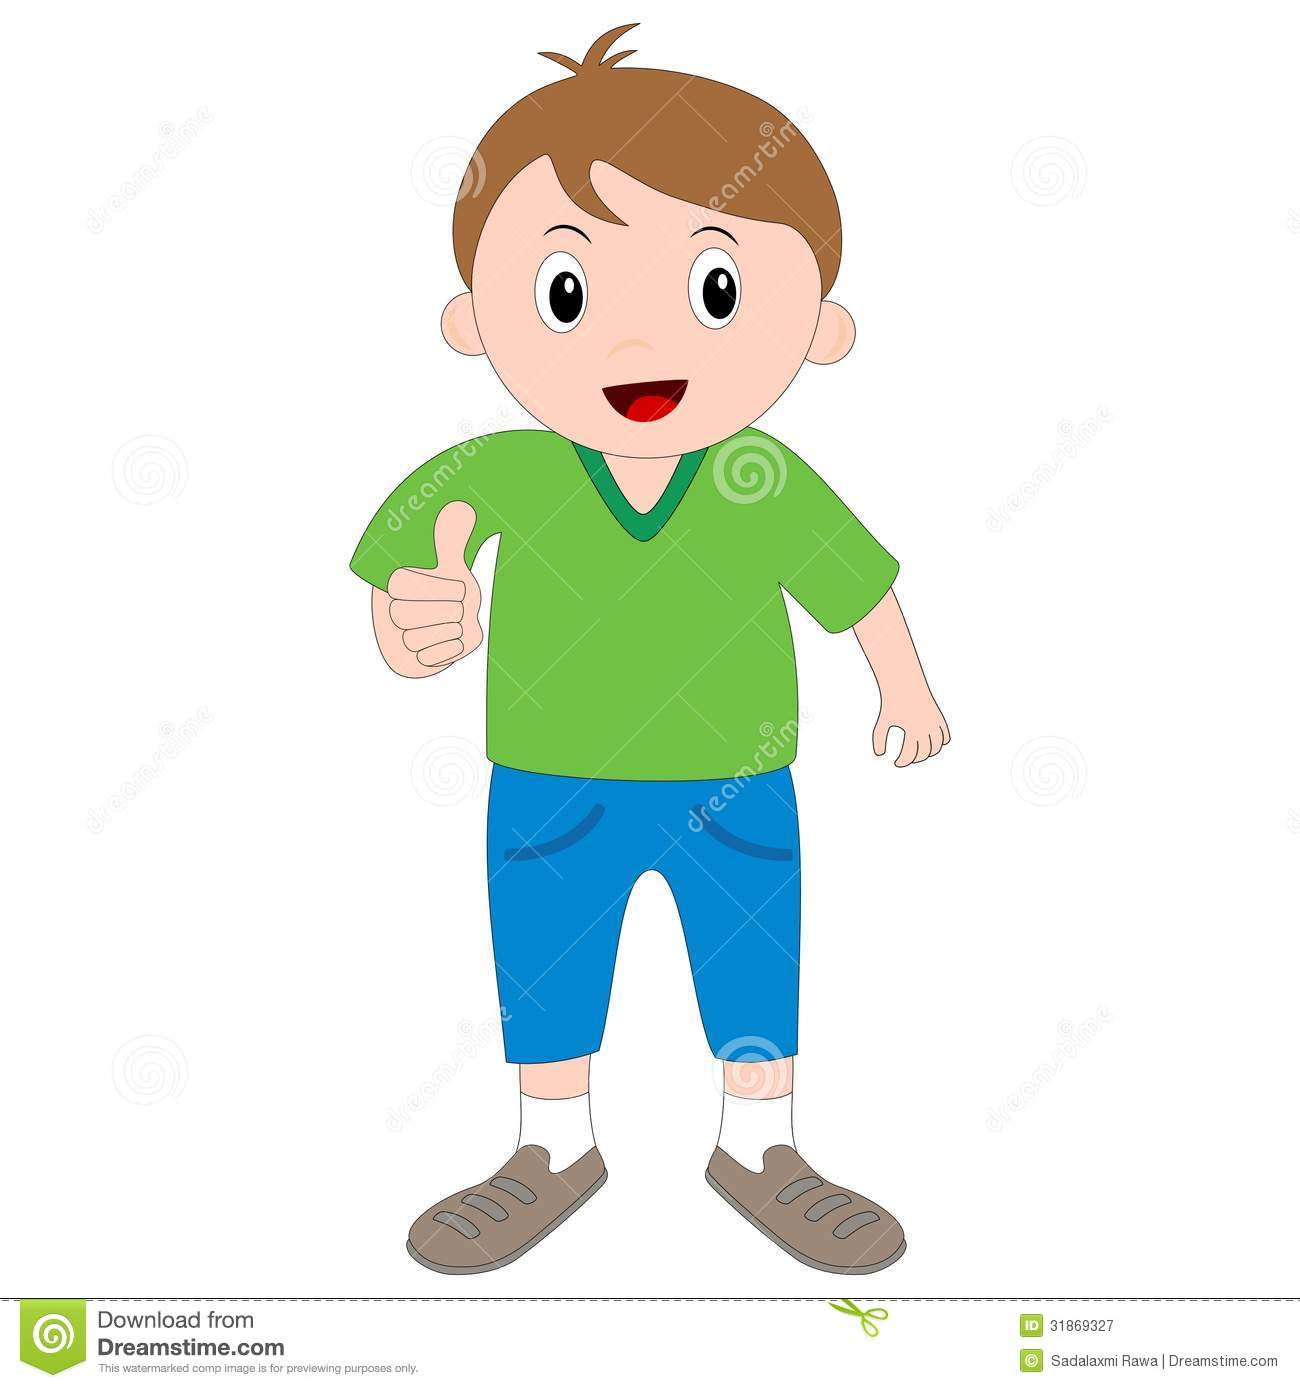 Clipart boy thumbs up picture free stock Boy Thumbs Up Clipart - Clipart Kid picture free stock